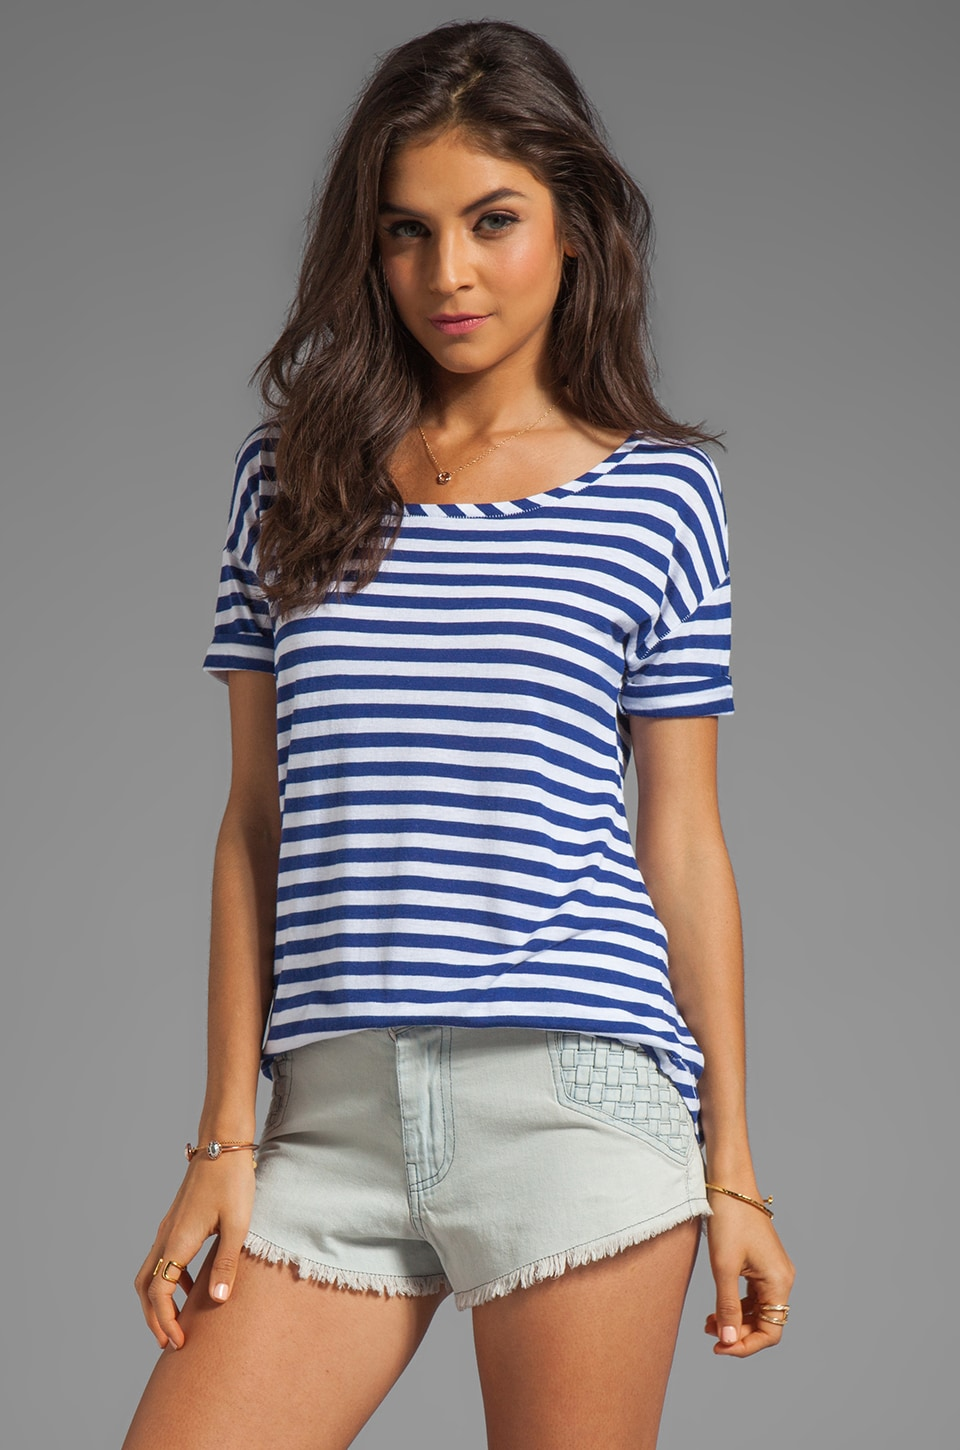 Juicy Couture Stripe Malibu Tee in Dark Cobalt/White